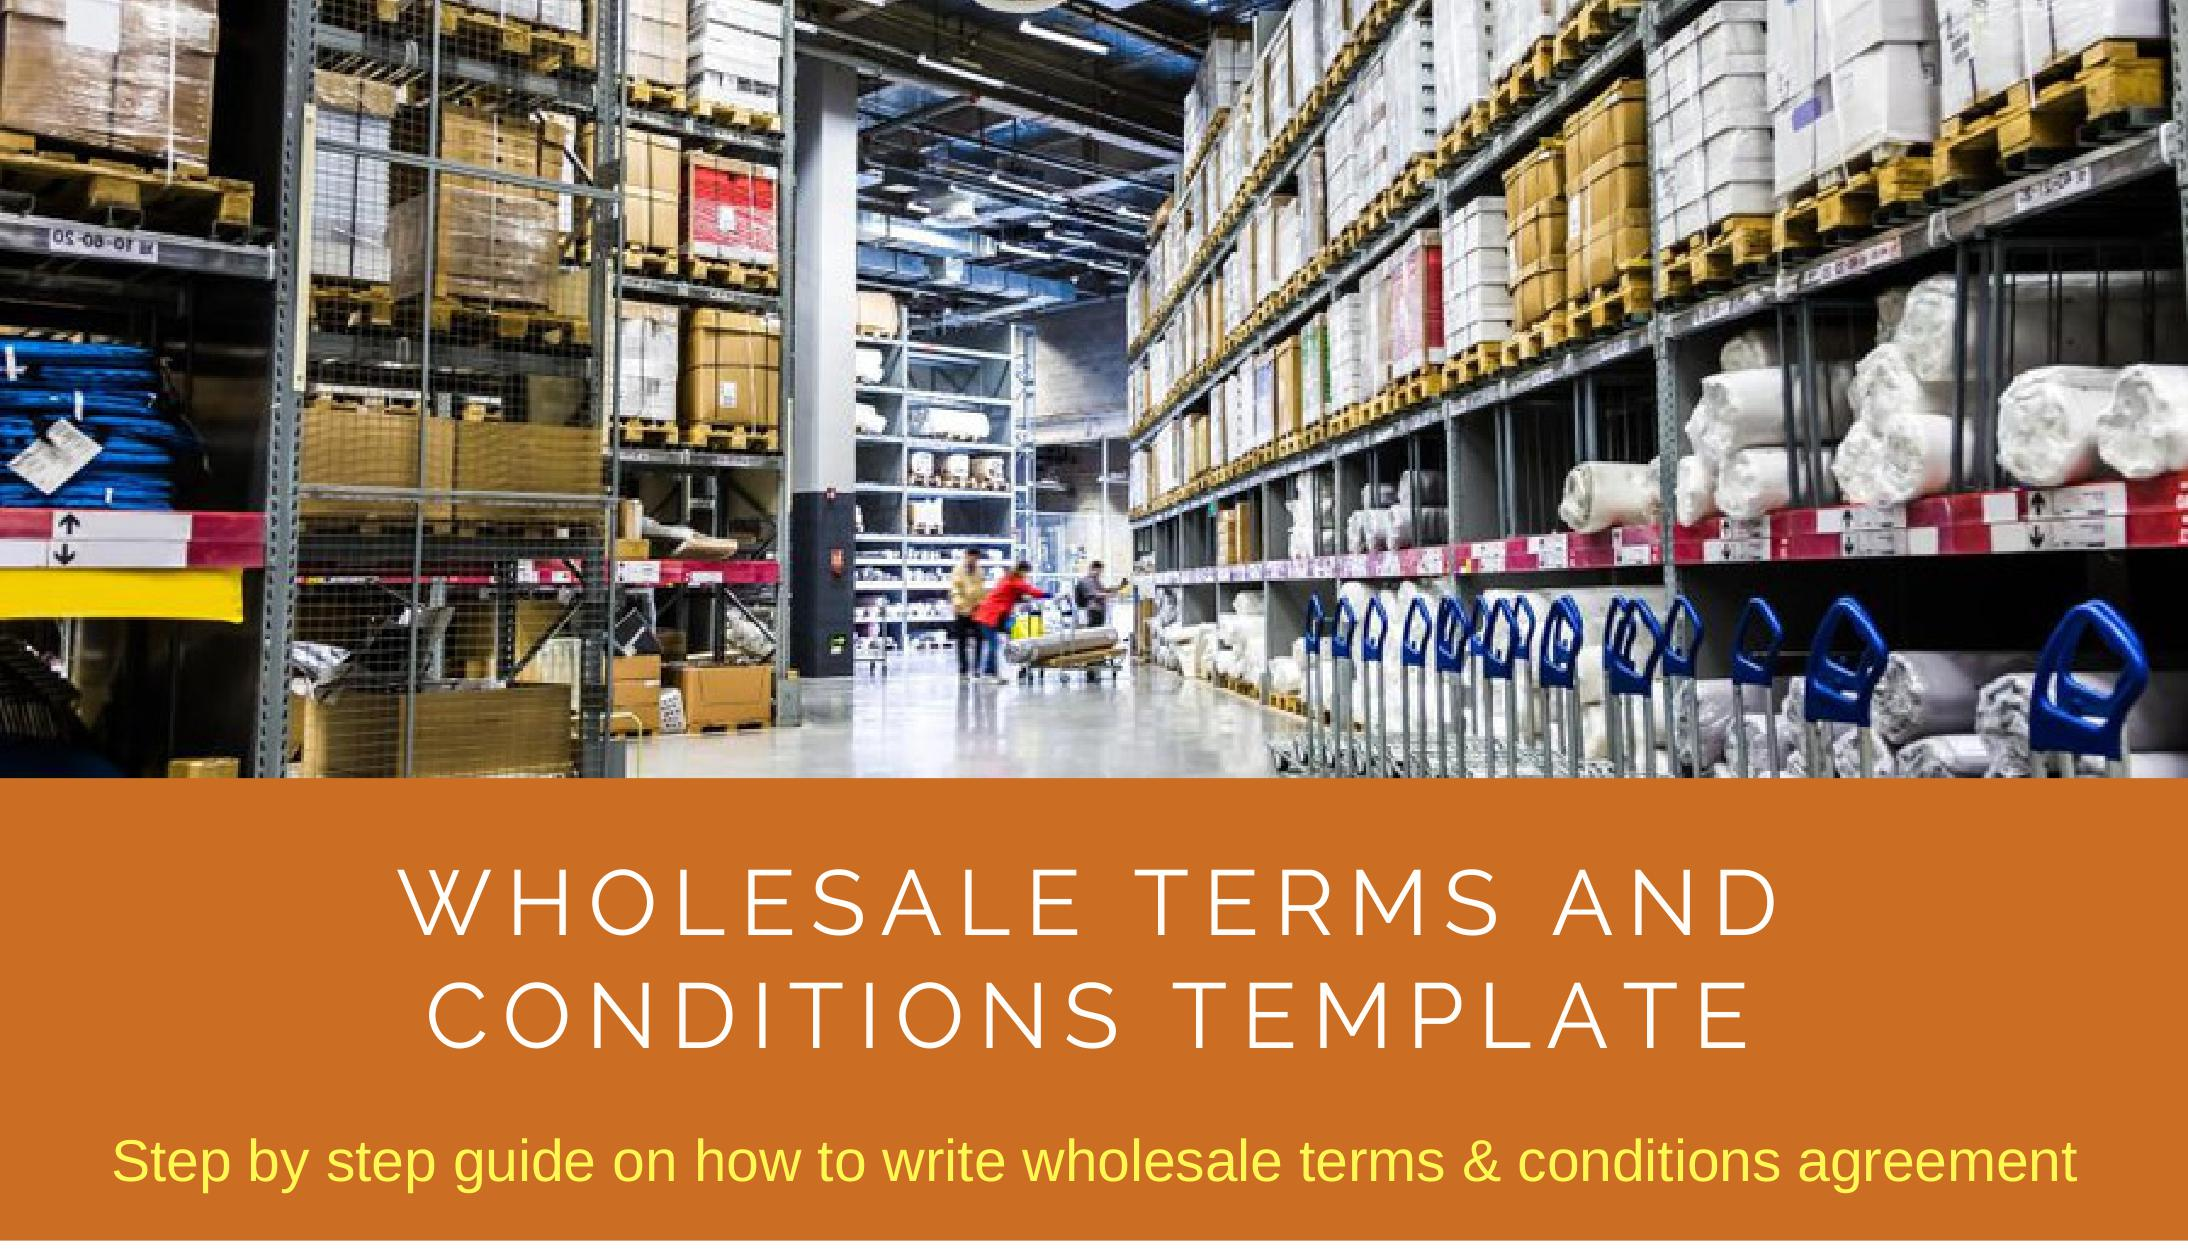 app terms and conditions template - wholesale terms and conditions template download